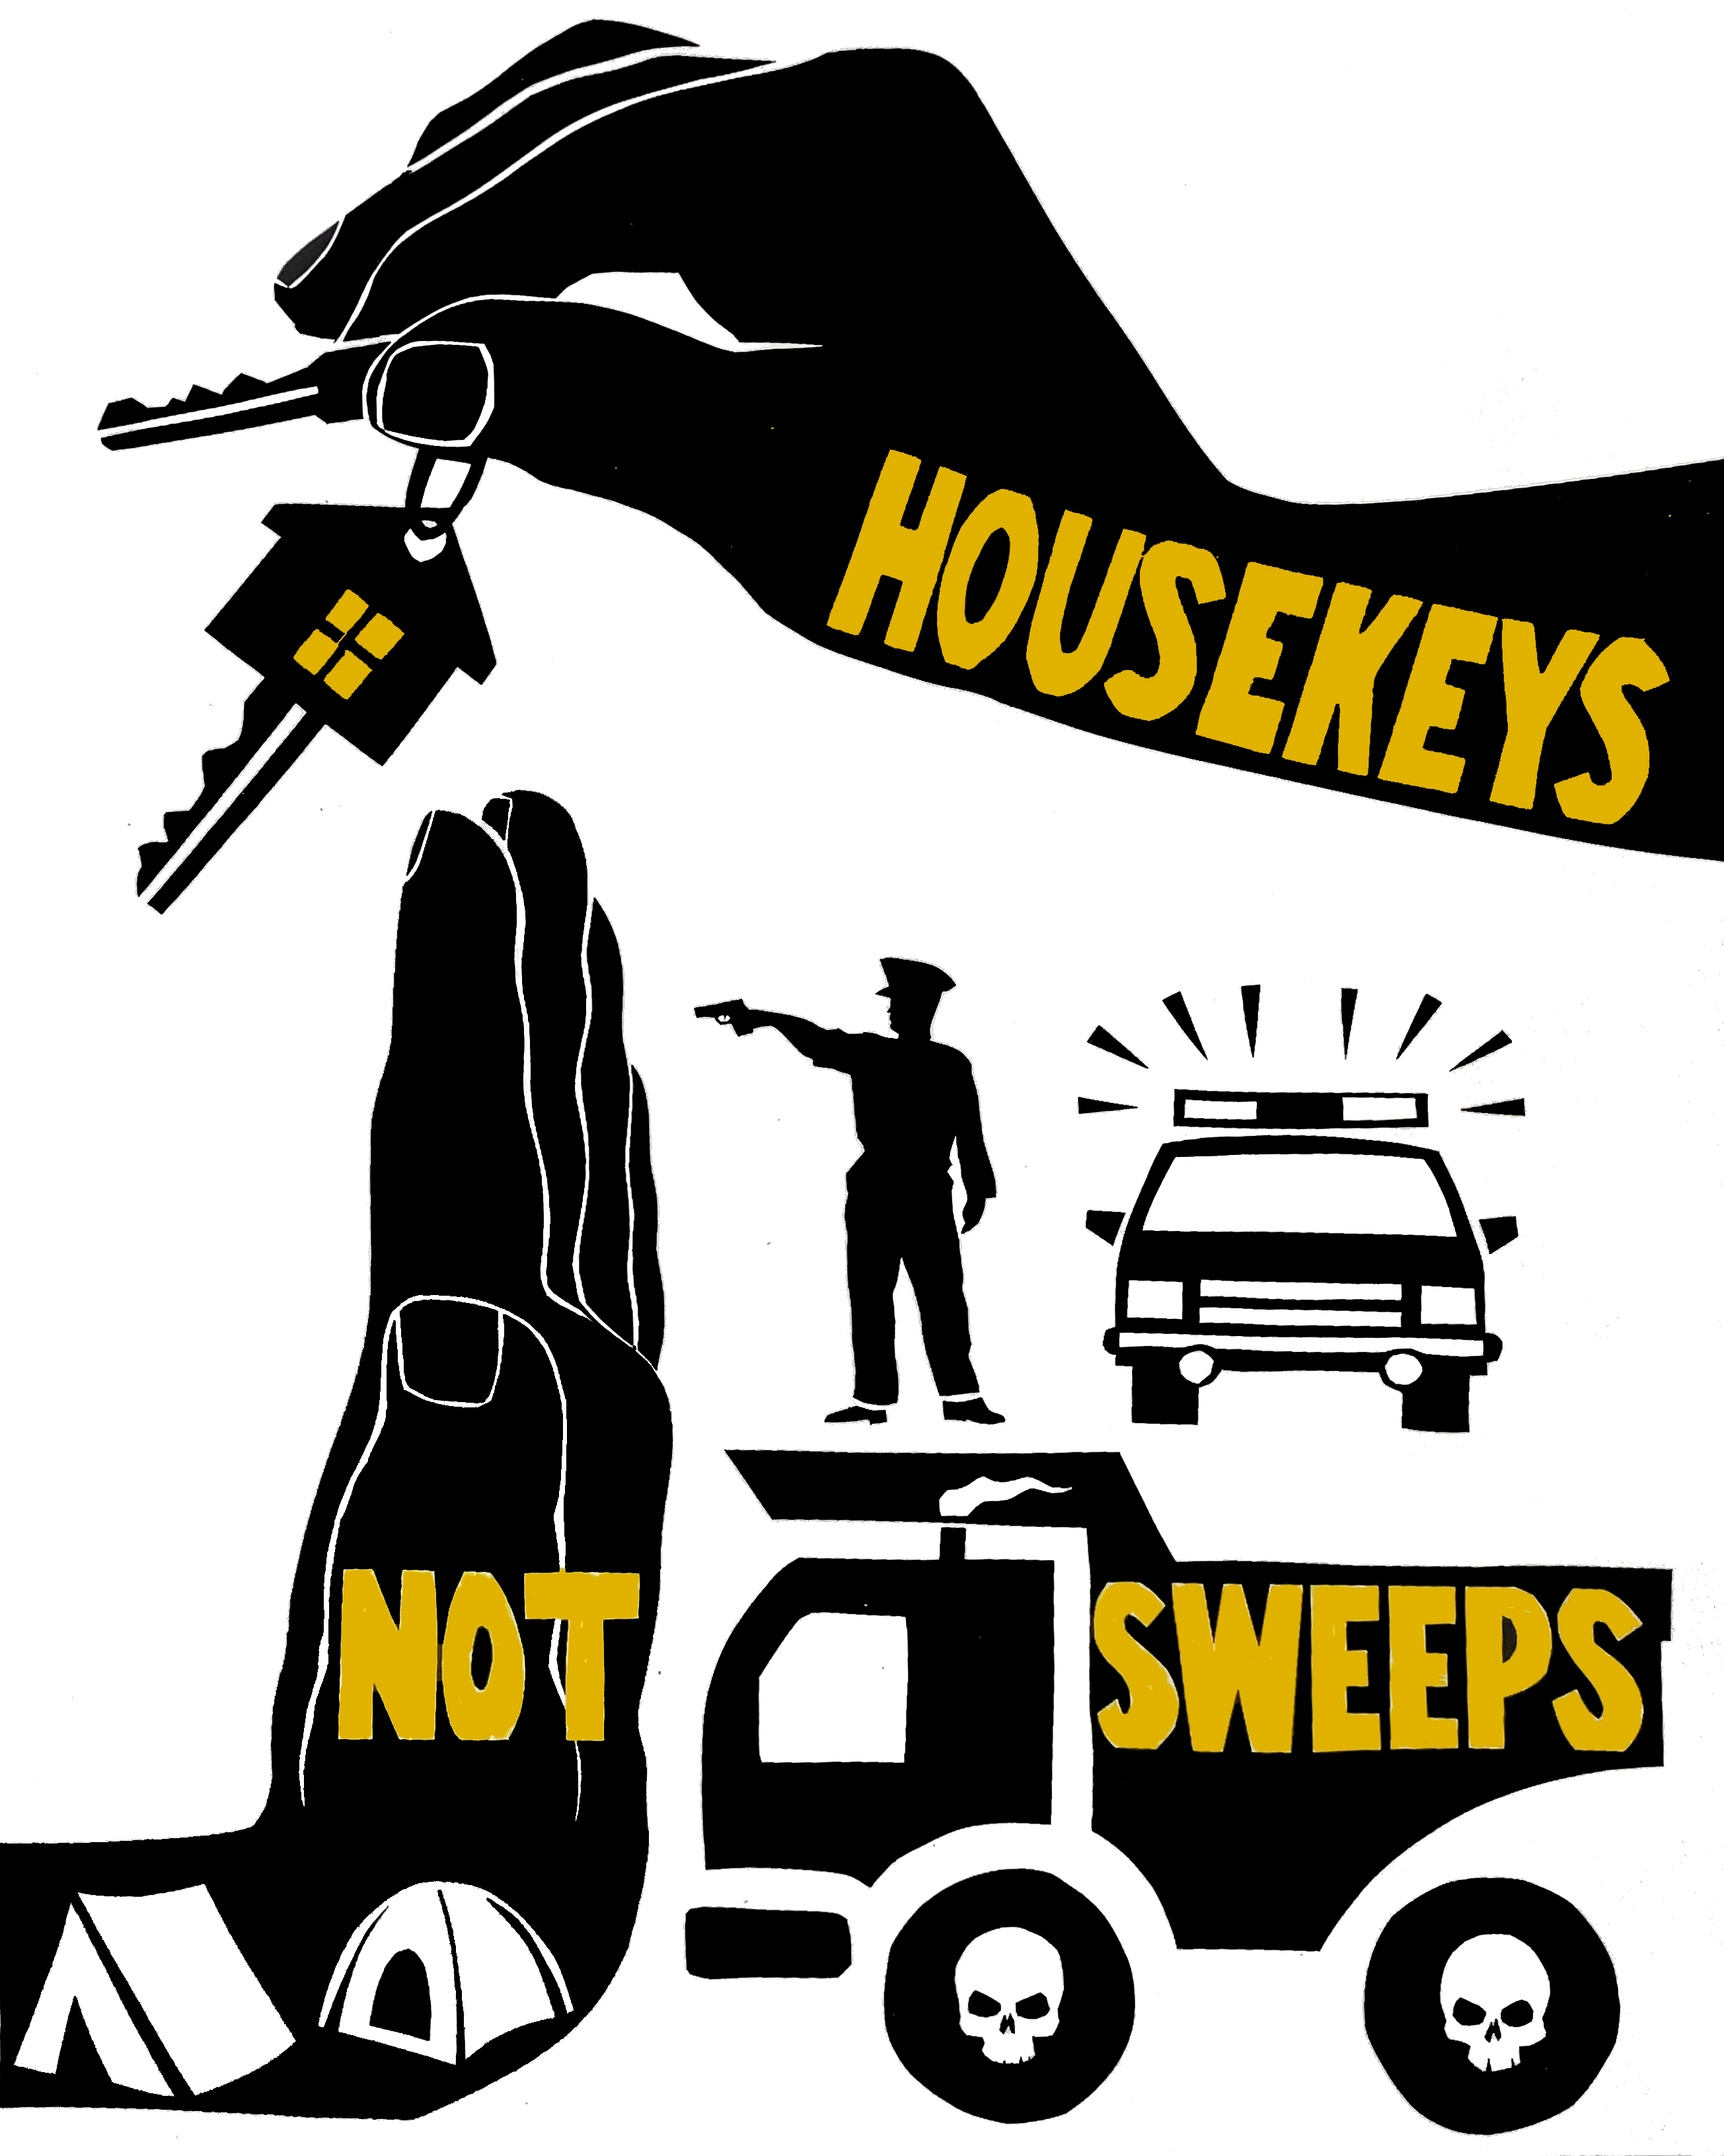 Housekeys-Not-Sweeps-by-David-Solnit